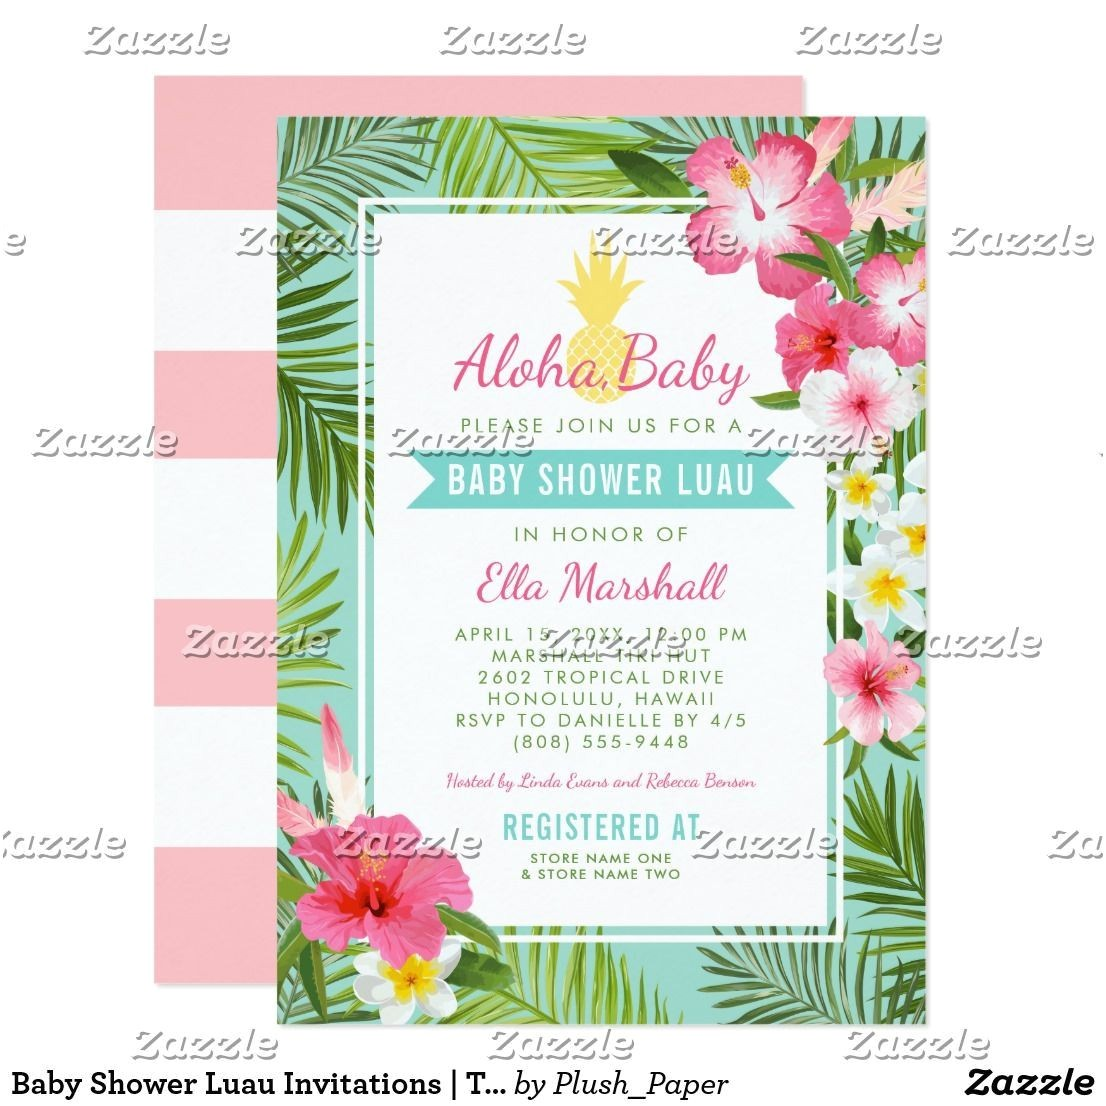 baby shower luau invitations tropical flowers pinterest lush party invitations